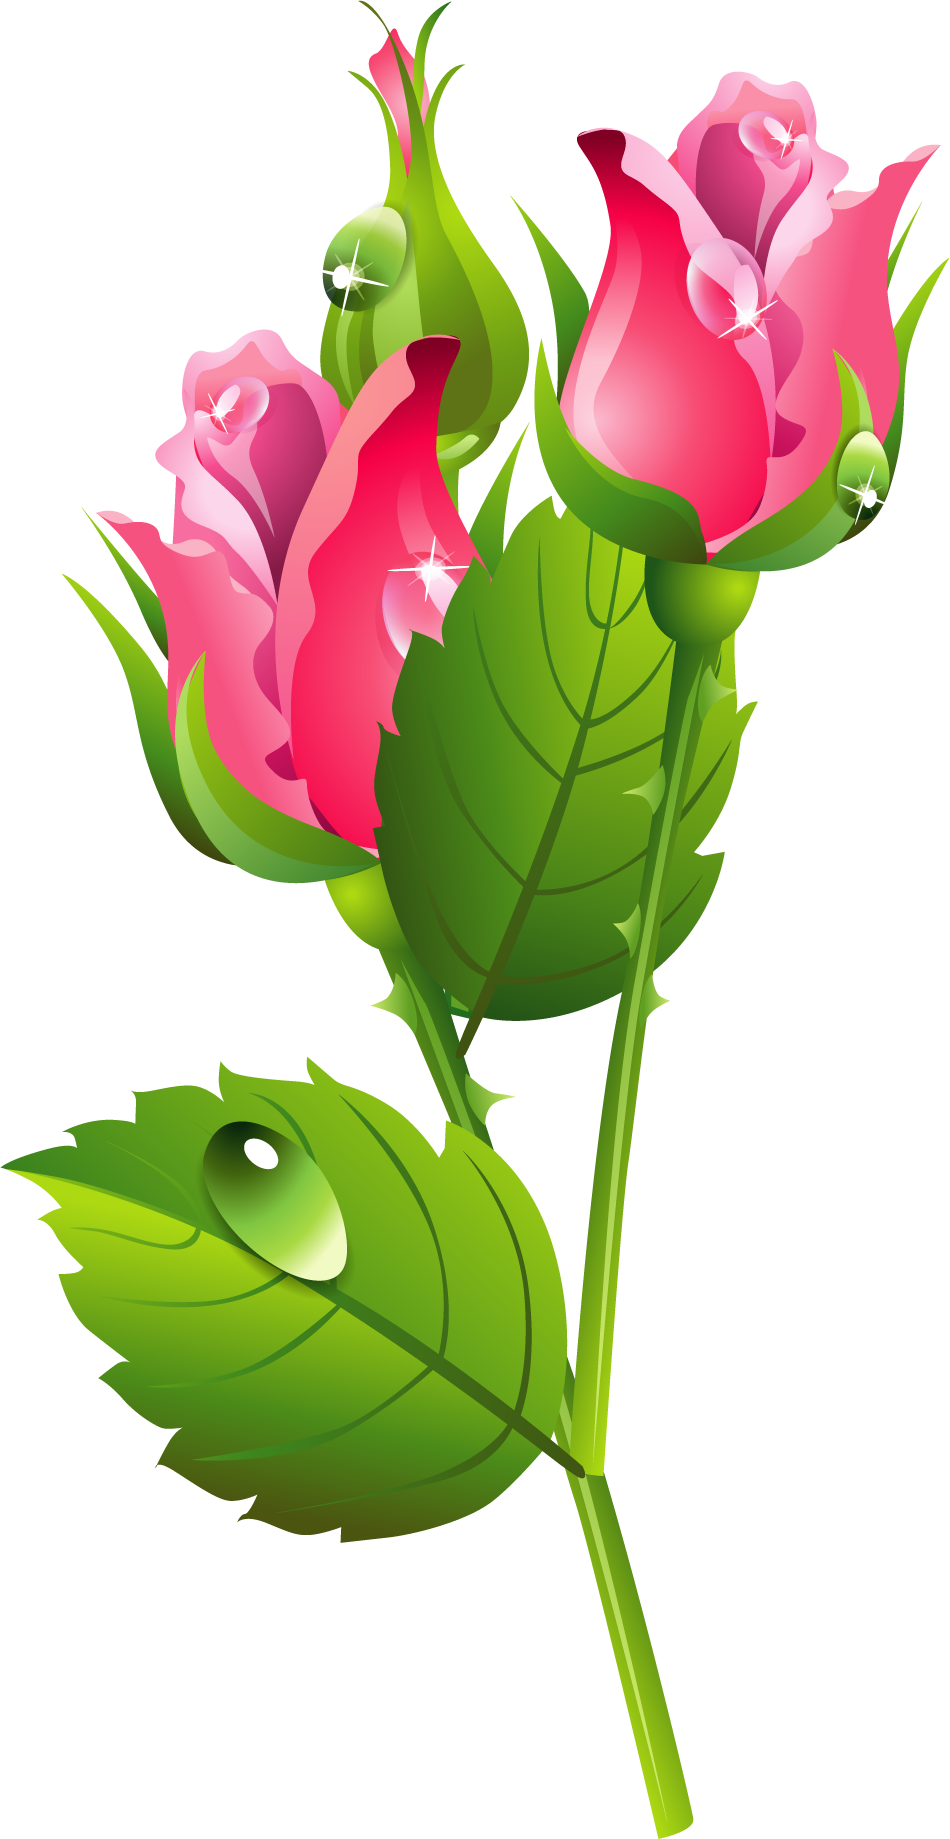 ♛ Christine Staniforth ♛༻ | Clip art Flowers! #3 | Pinterest ... image free download